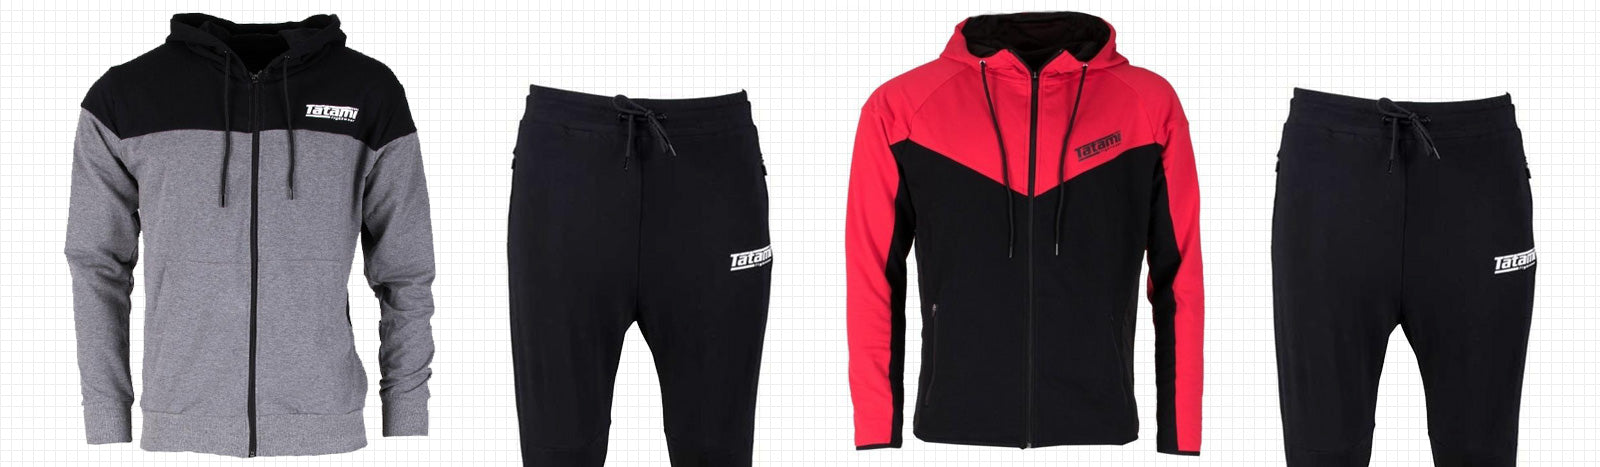 Mens BJJ Leisurewear